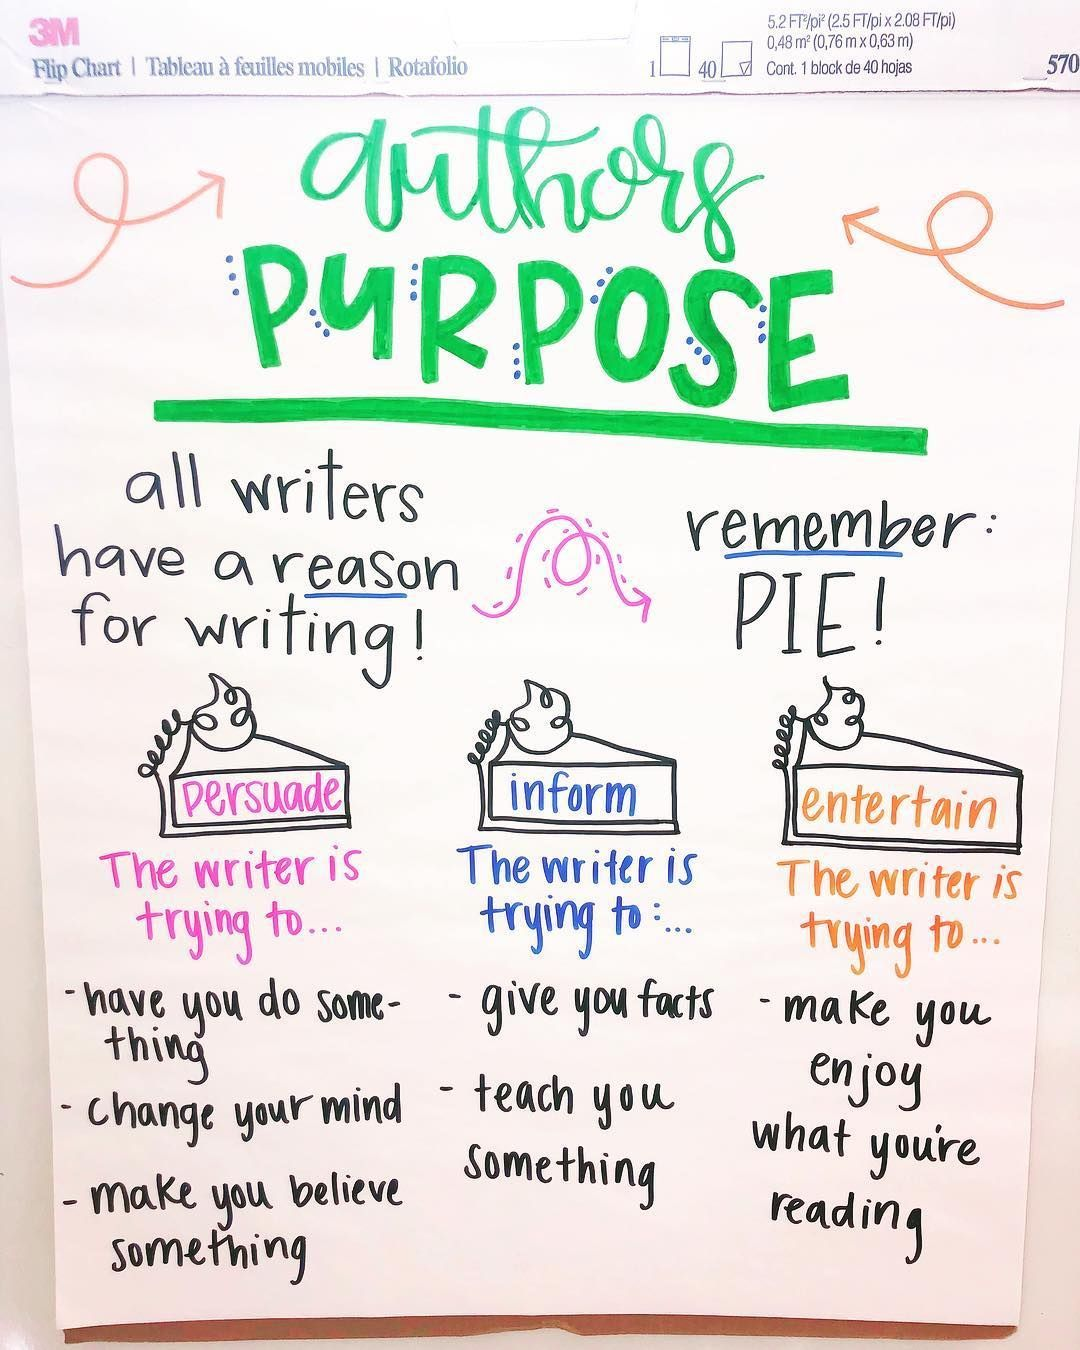 Montana Riley On Instagram Starting Authors Purpose Means